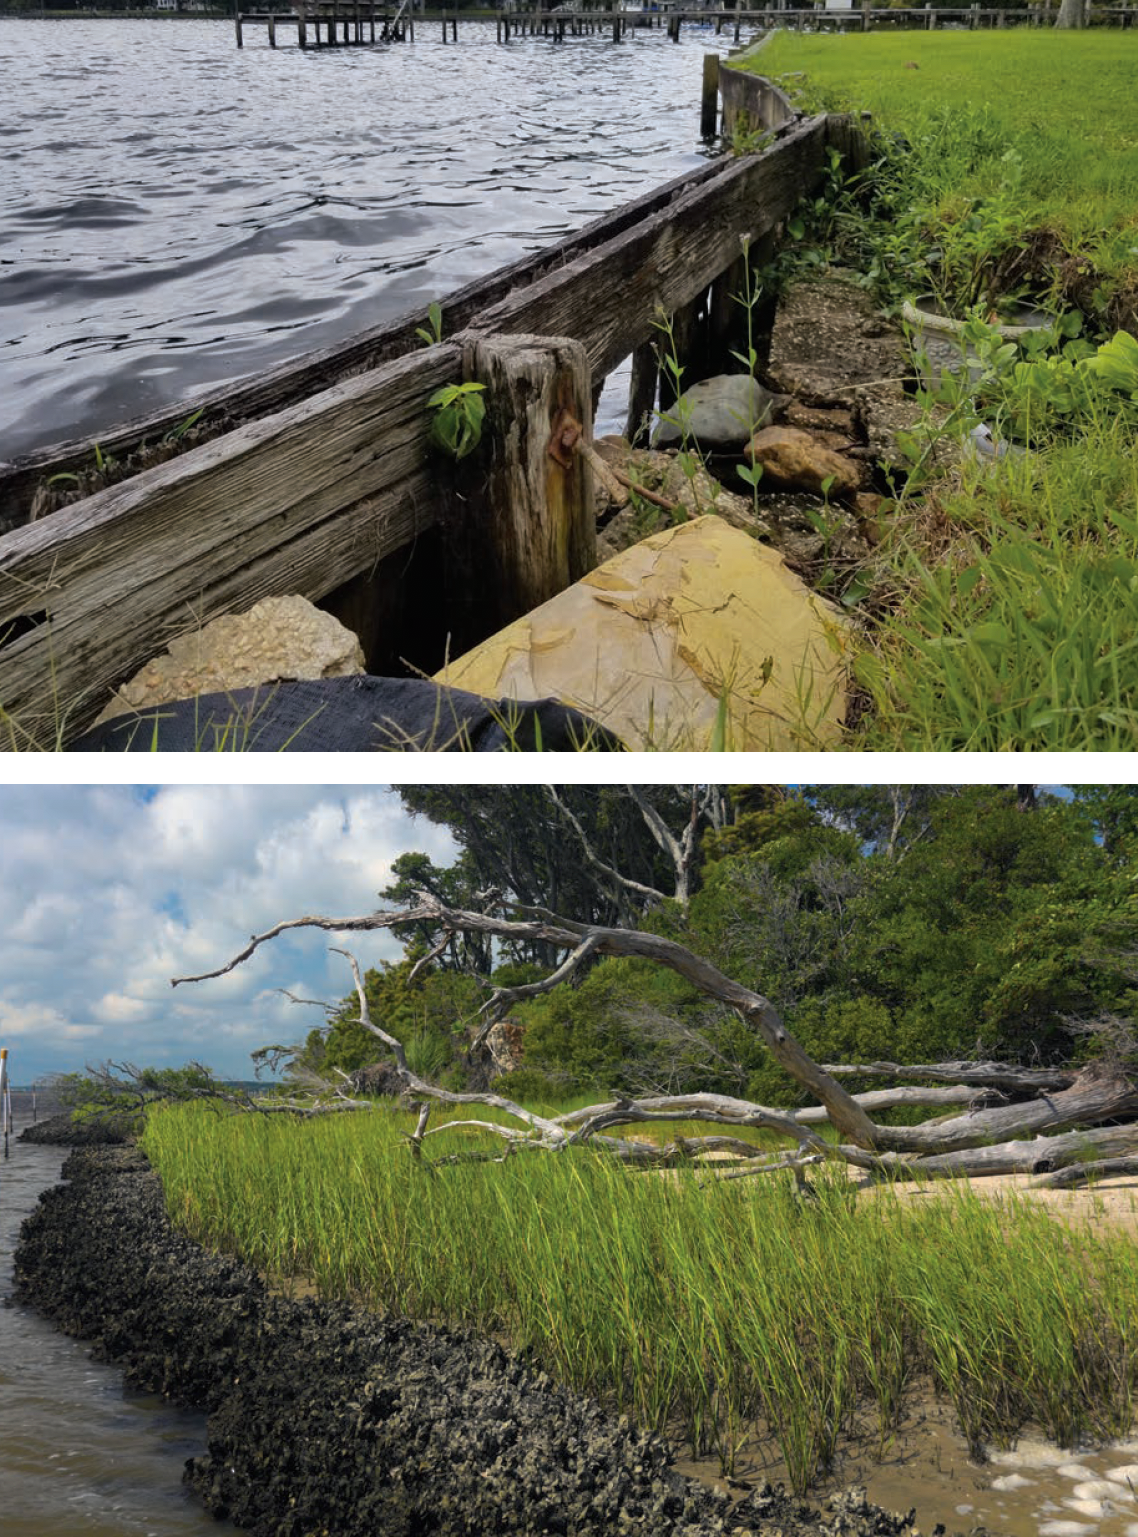 An alternative to hardened bulkheads (top) are living shorelines, which provide erosion control and habitat.